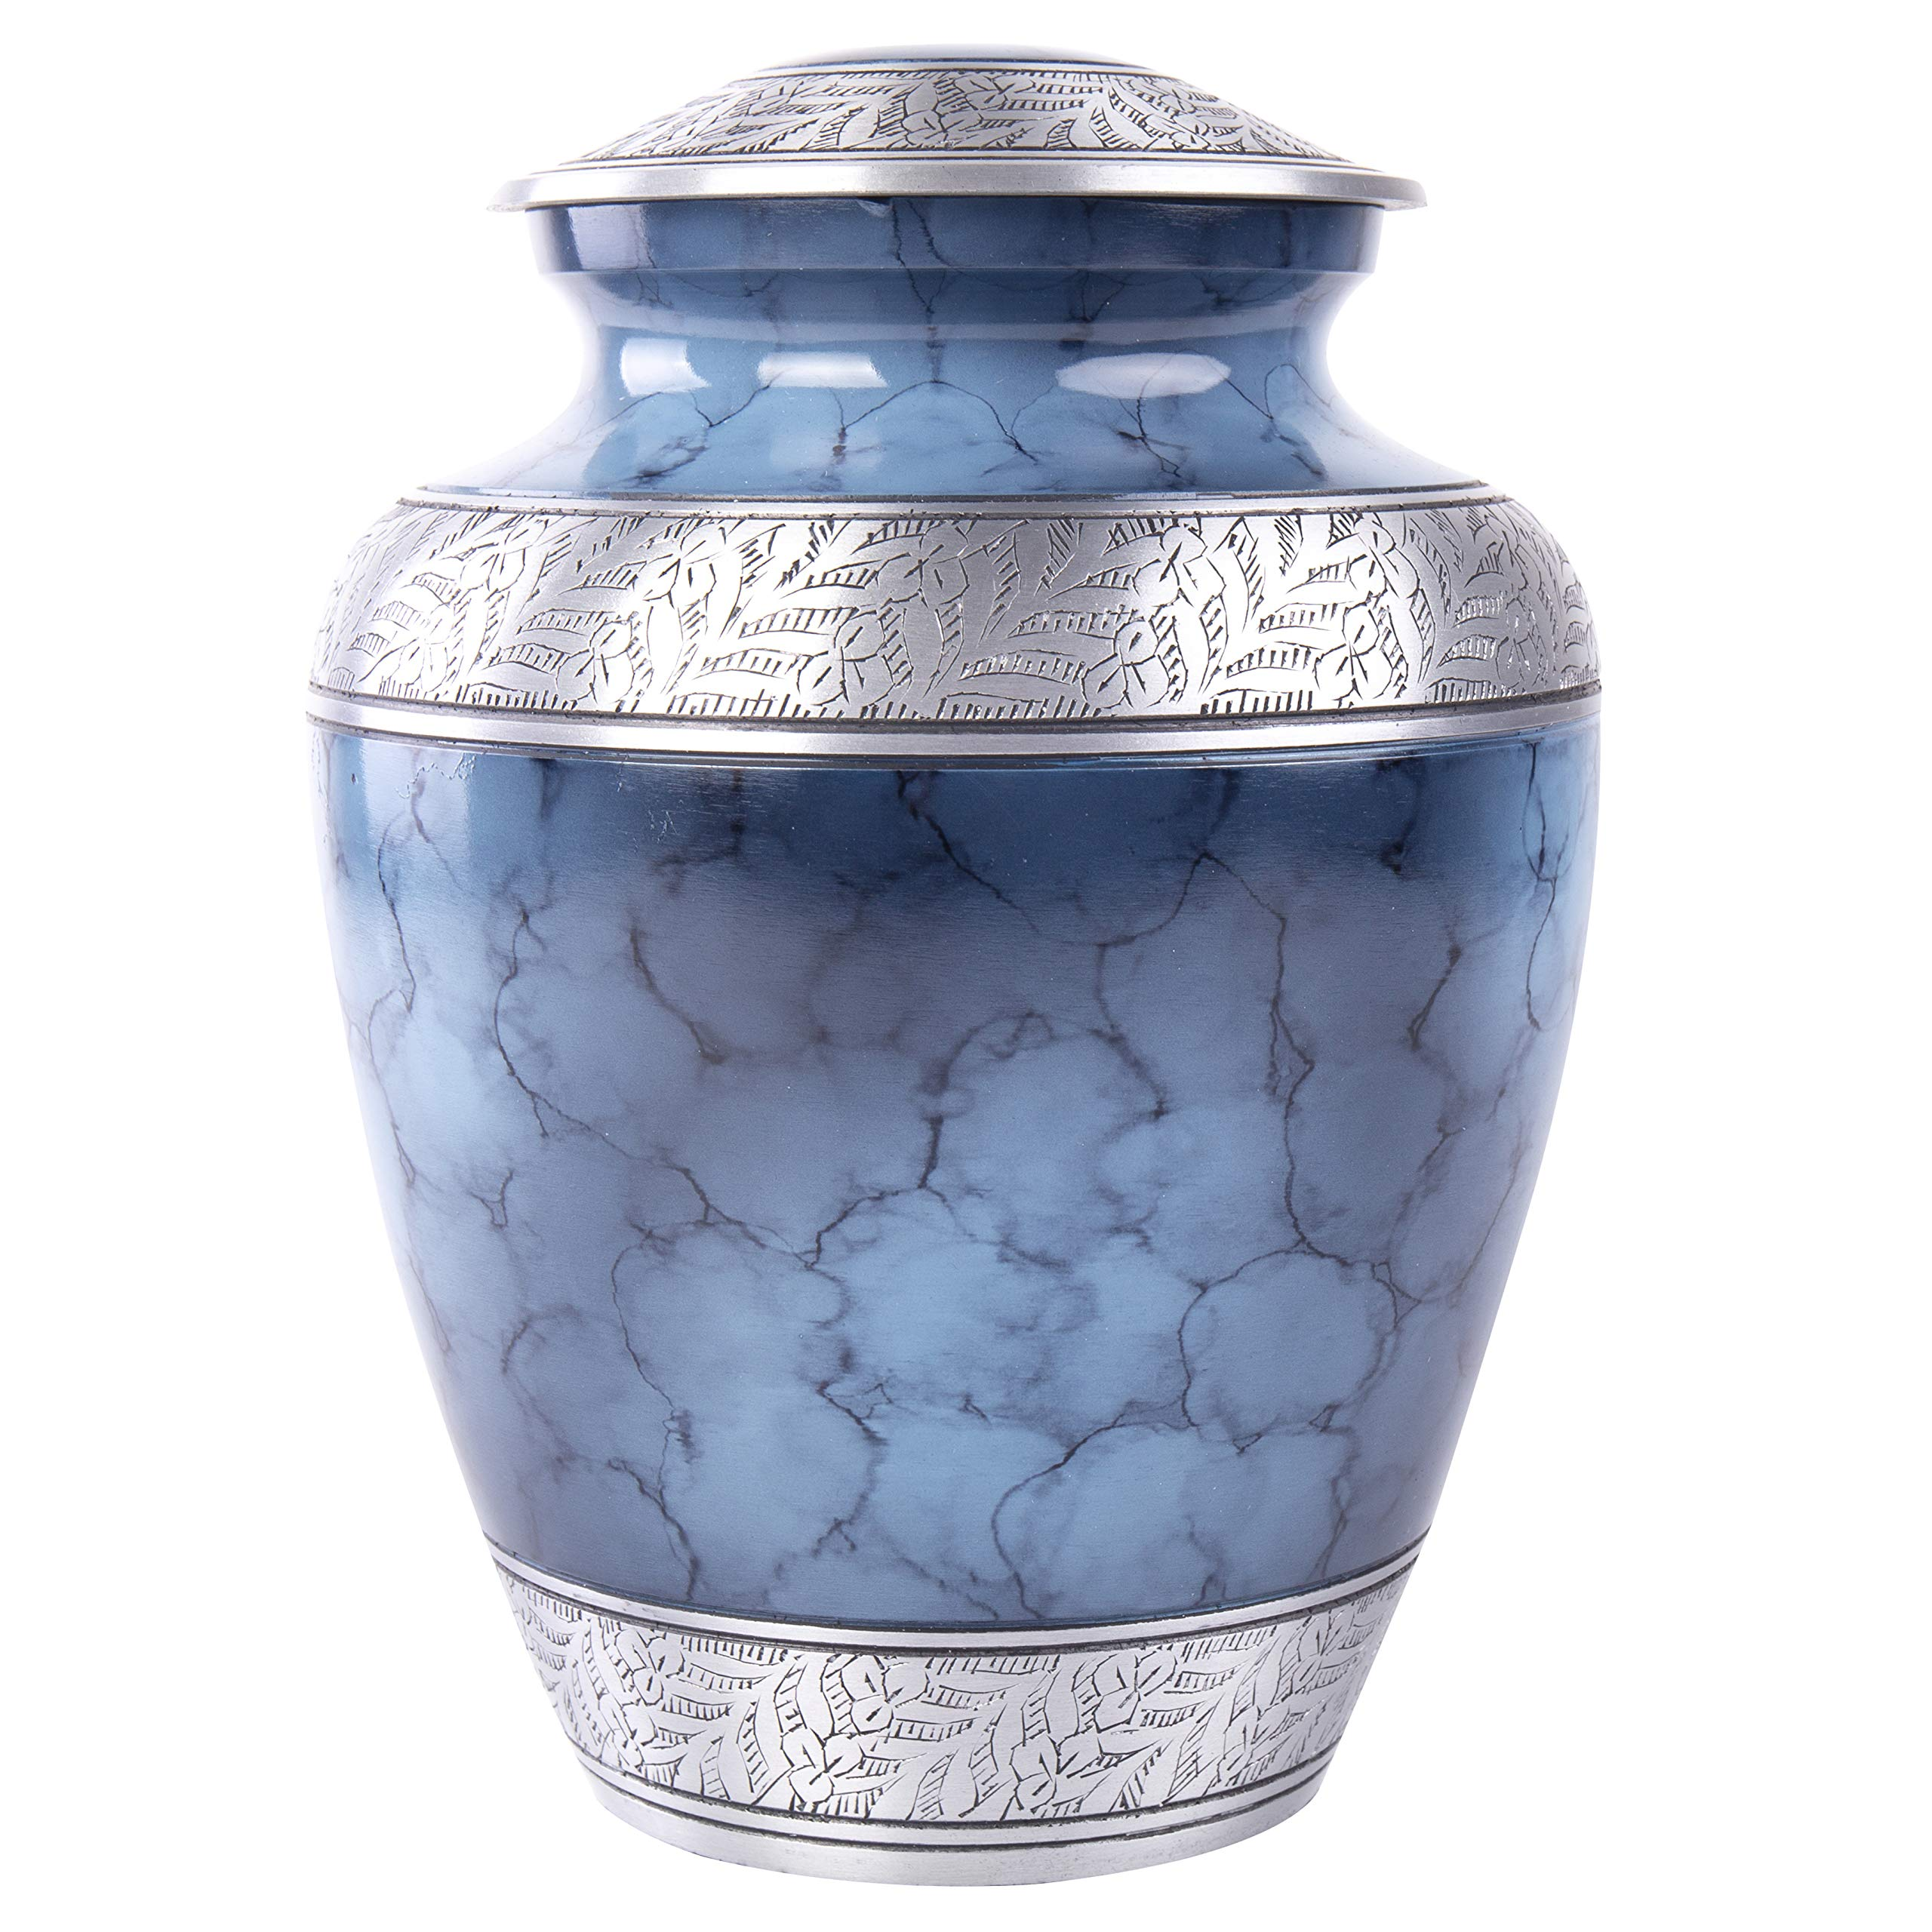 GSM Brands Cremation Urn Holds Adult Human Ashes - Large Handcrafted Funeral Memorial with Striking Blue Design (Aluminum - 10 Inch Height x 8 Inch Width)